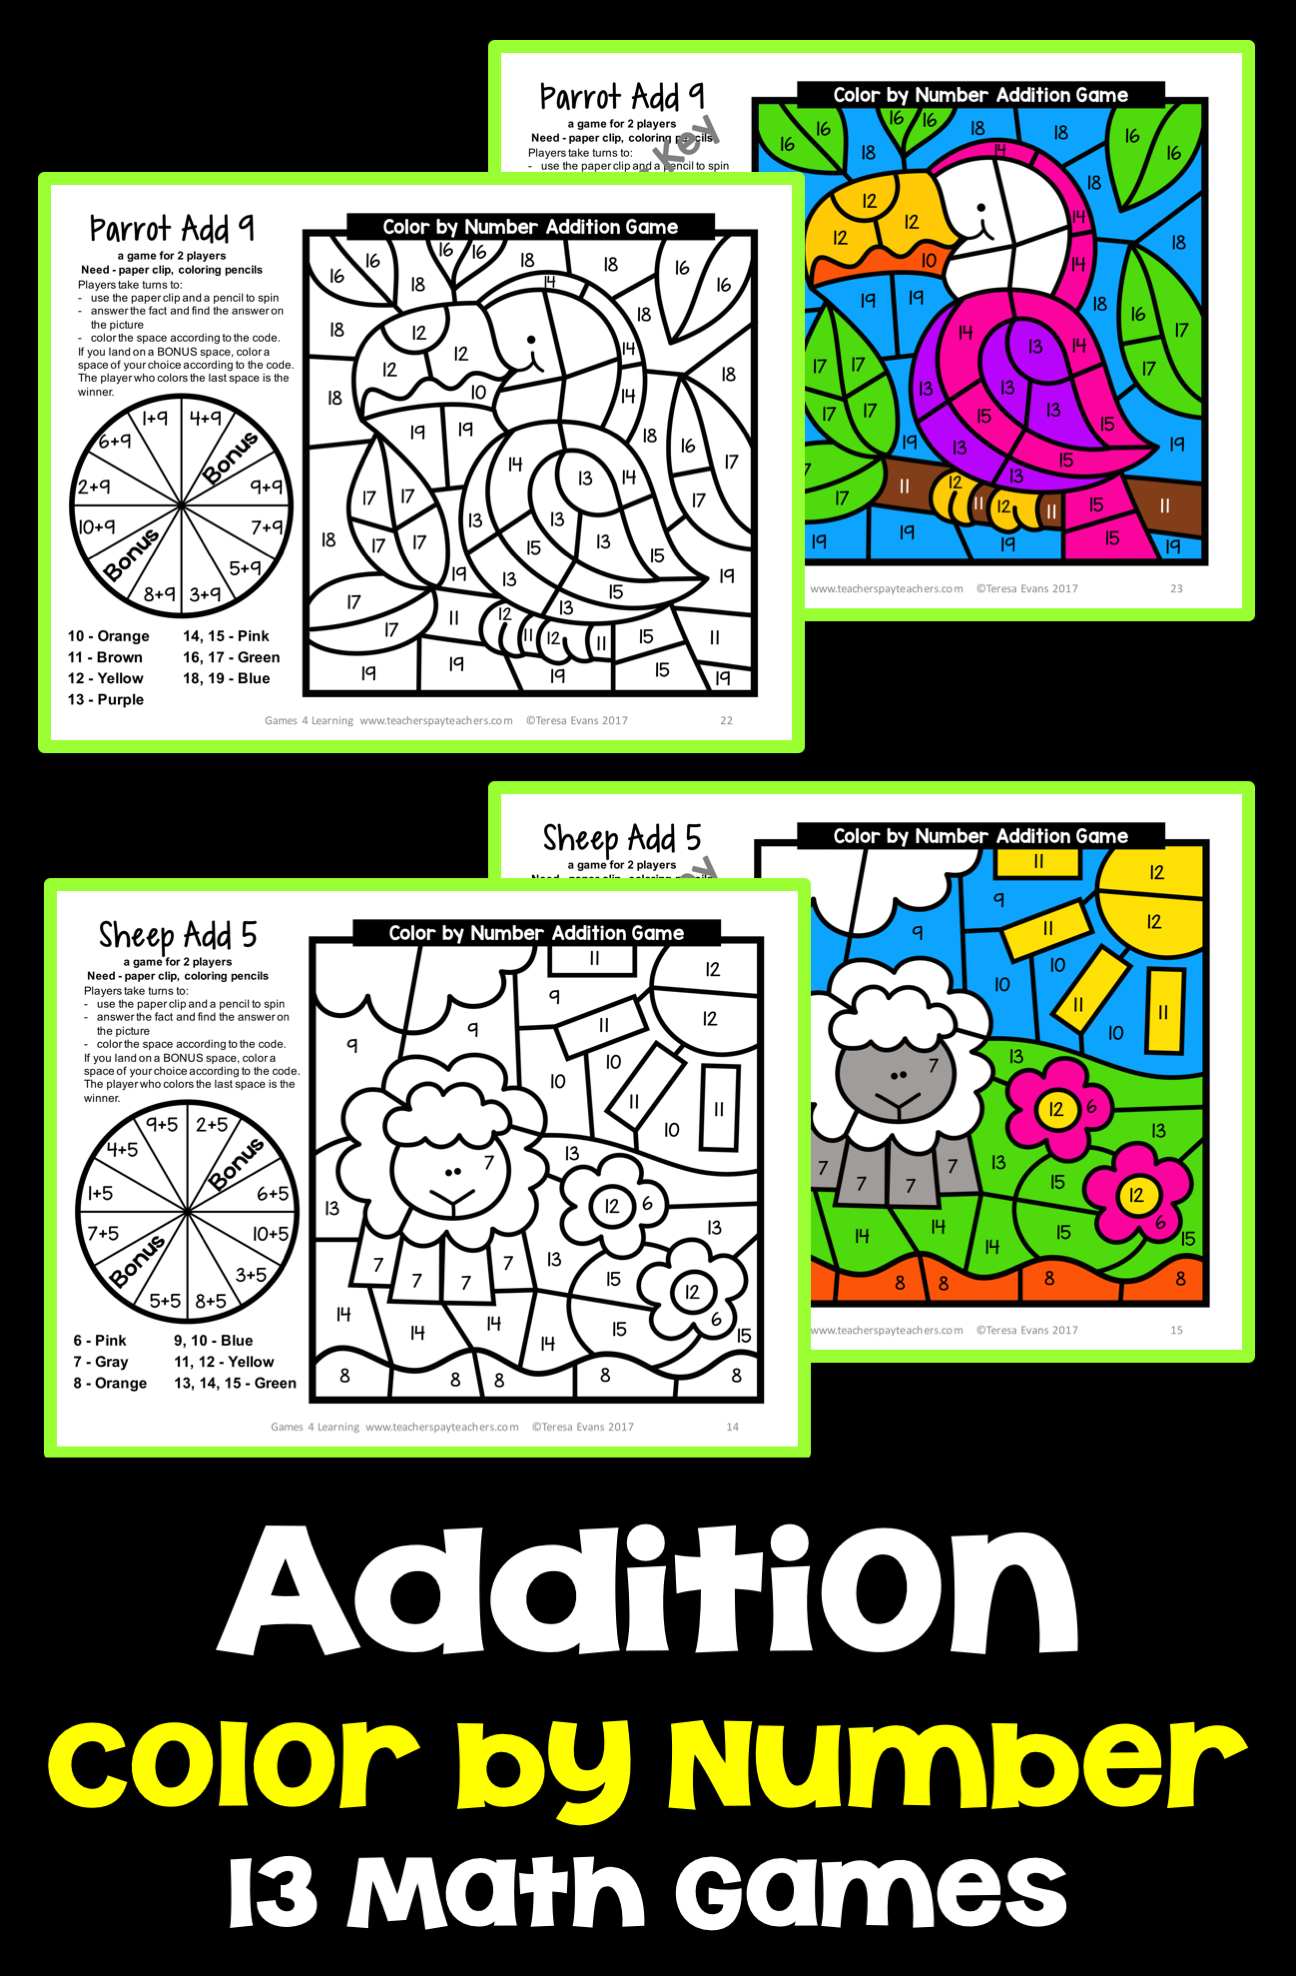 Addition Color by Number Games | Math, School and Homeschool